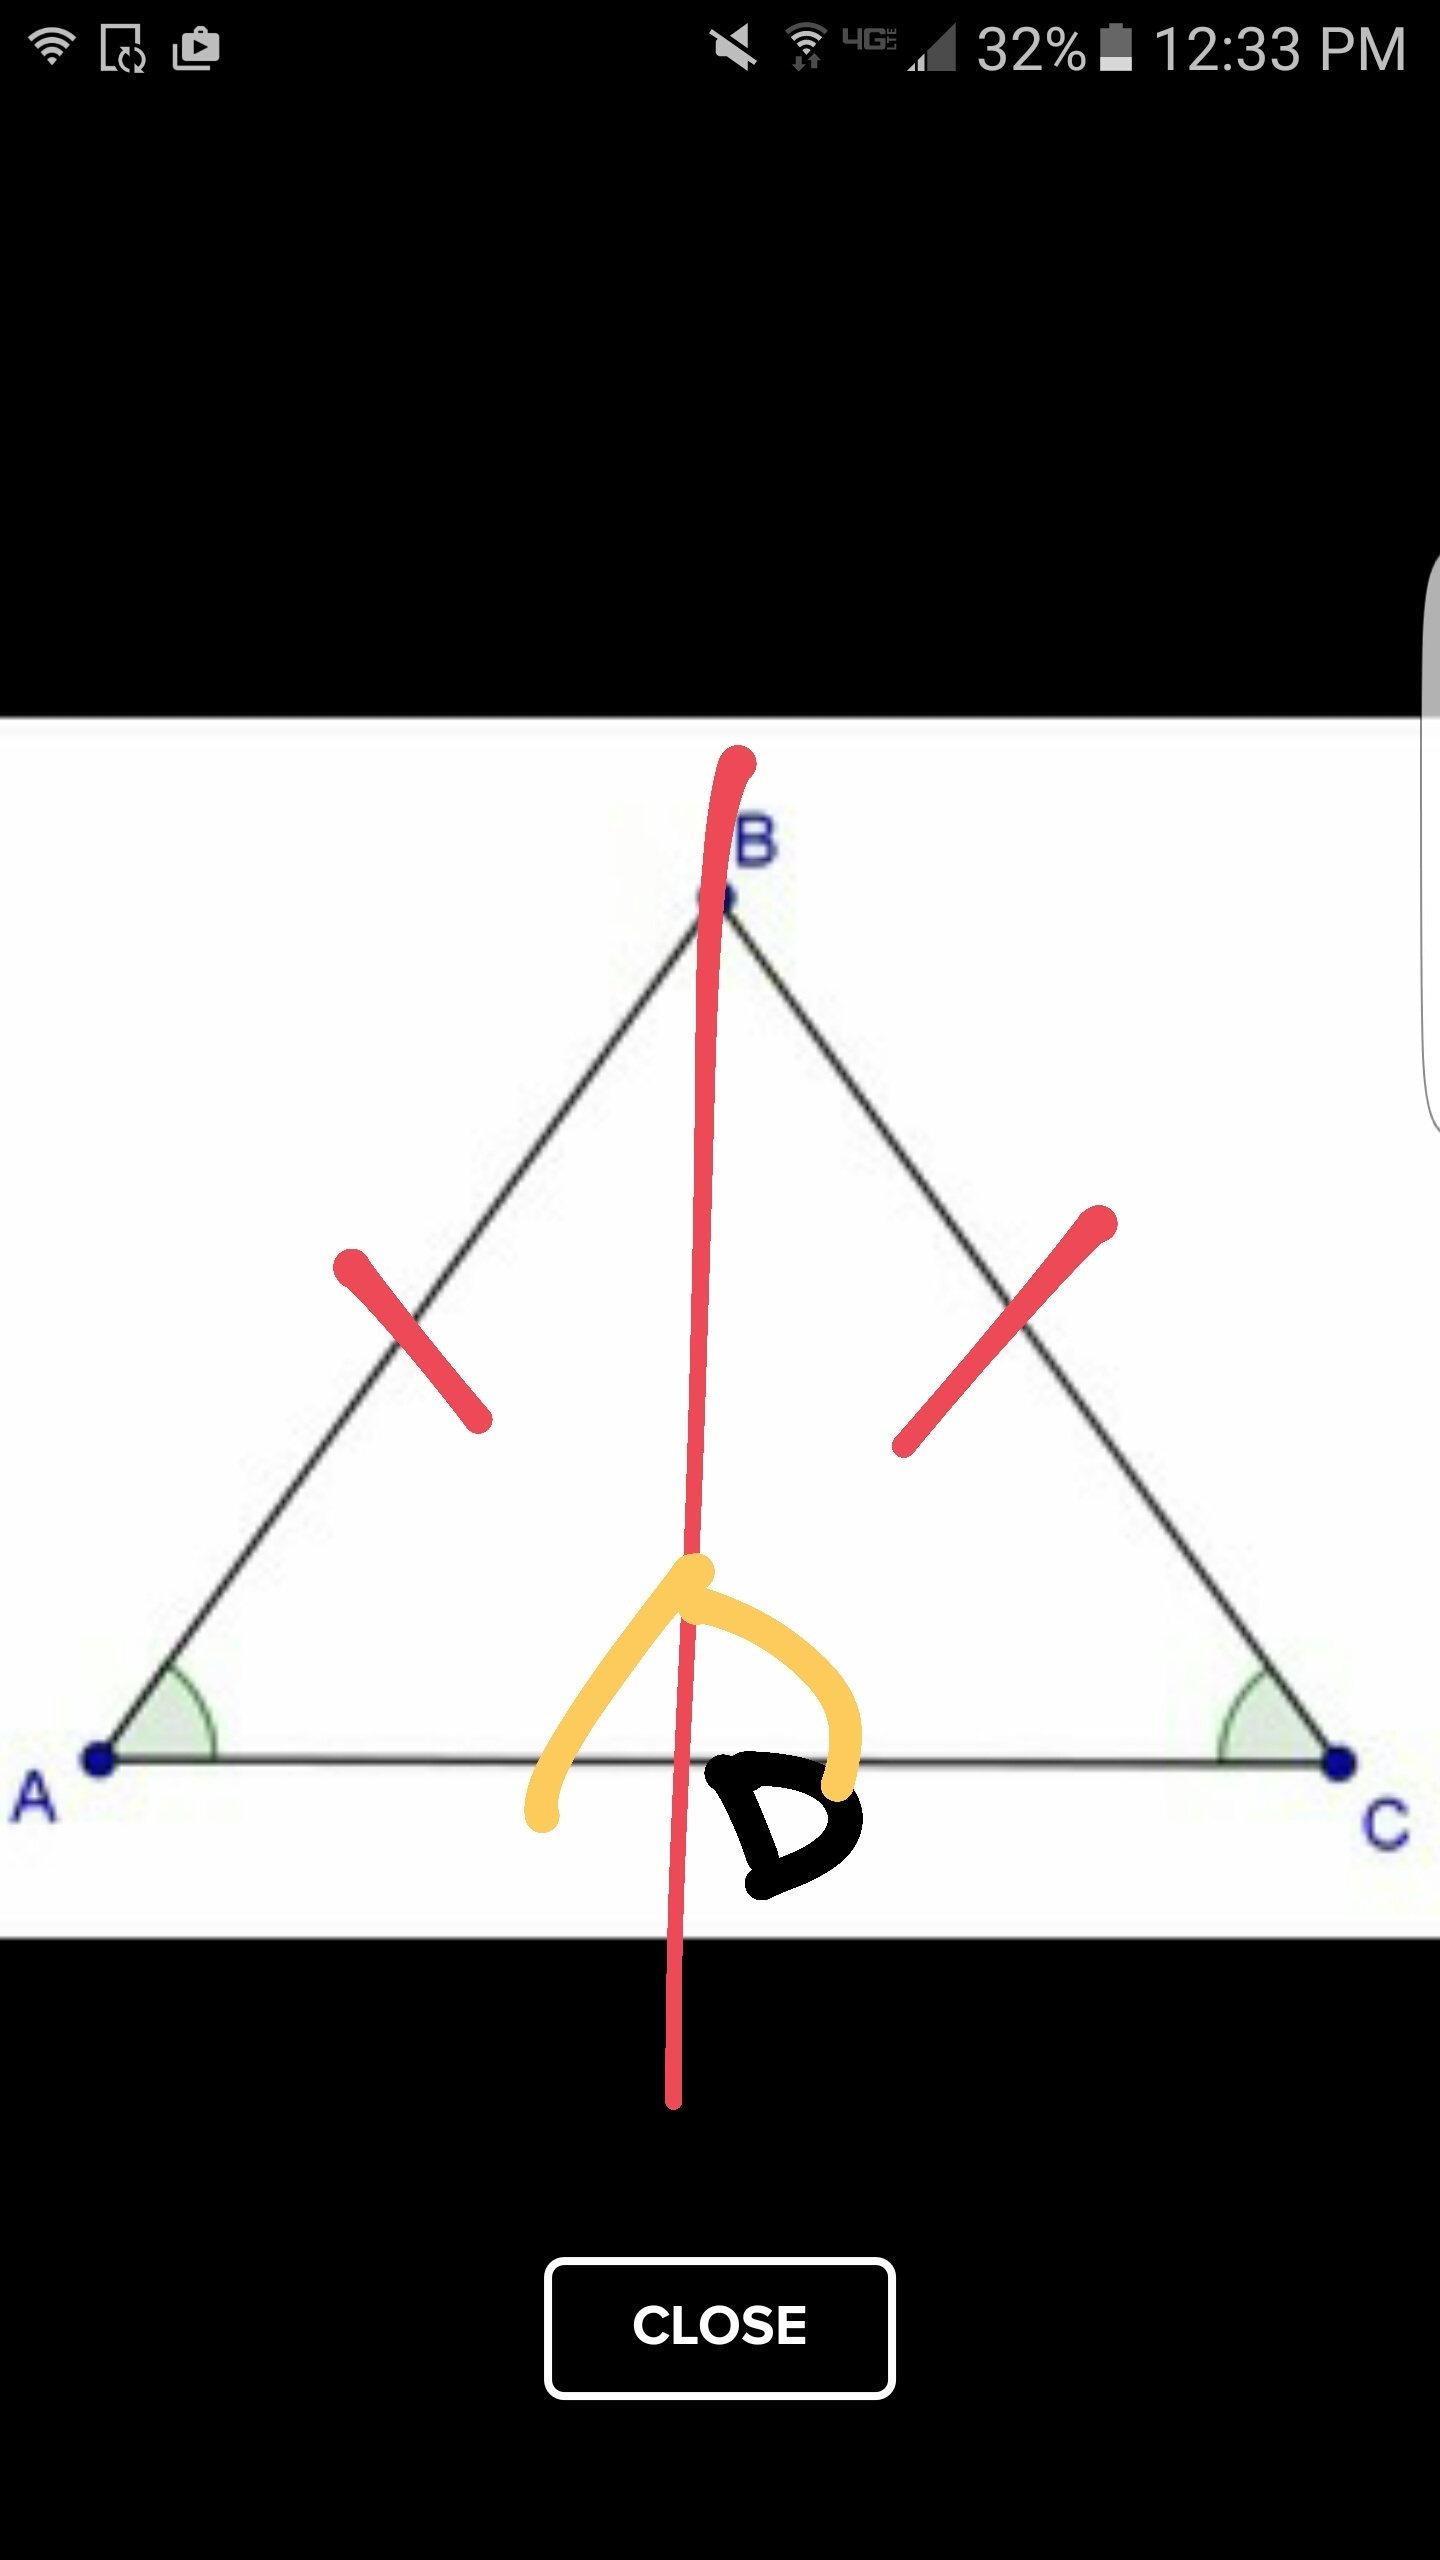 Given Base Bac And Acb Are Congruent Prove Abc Is An Isosceles Triangle When Completed